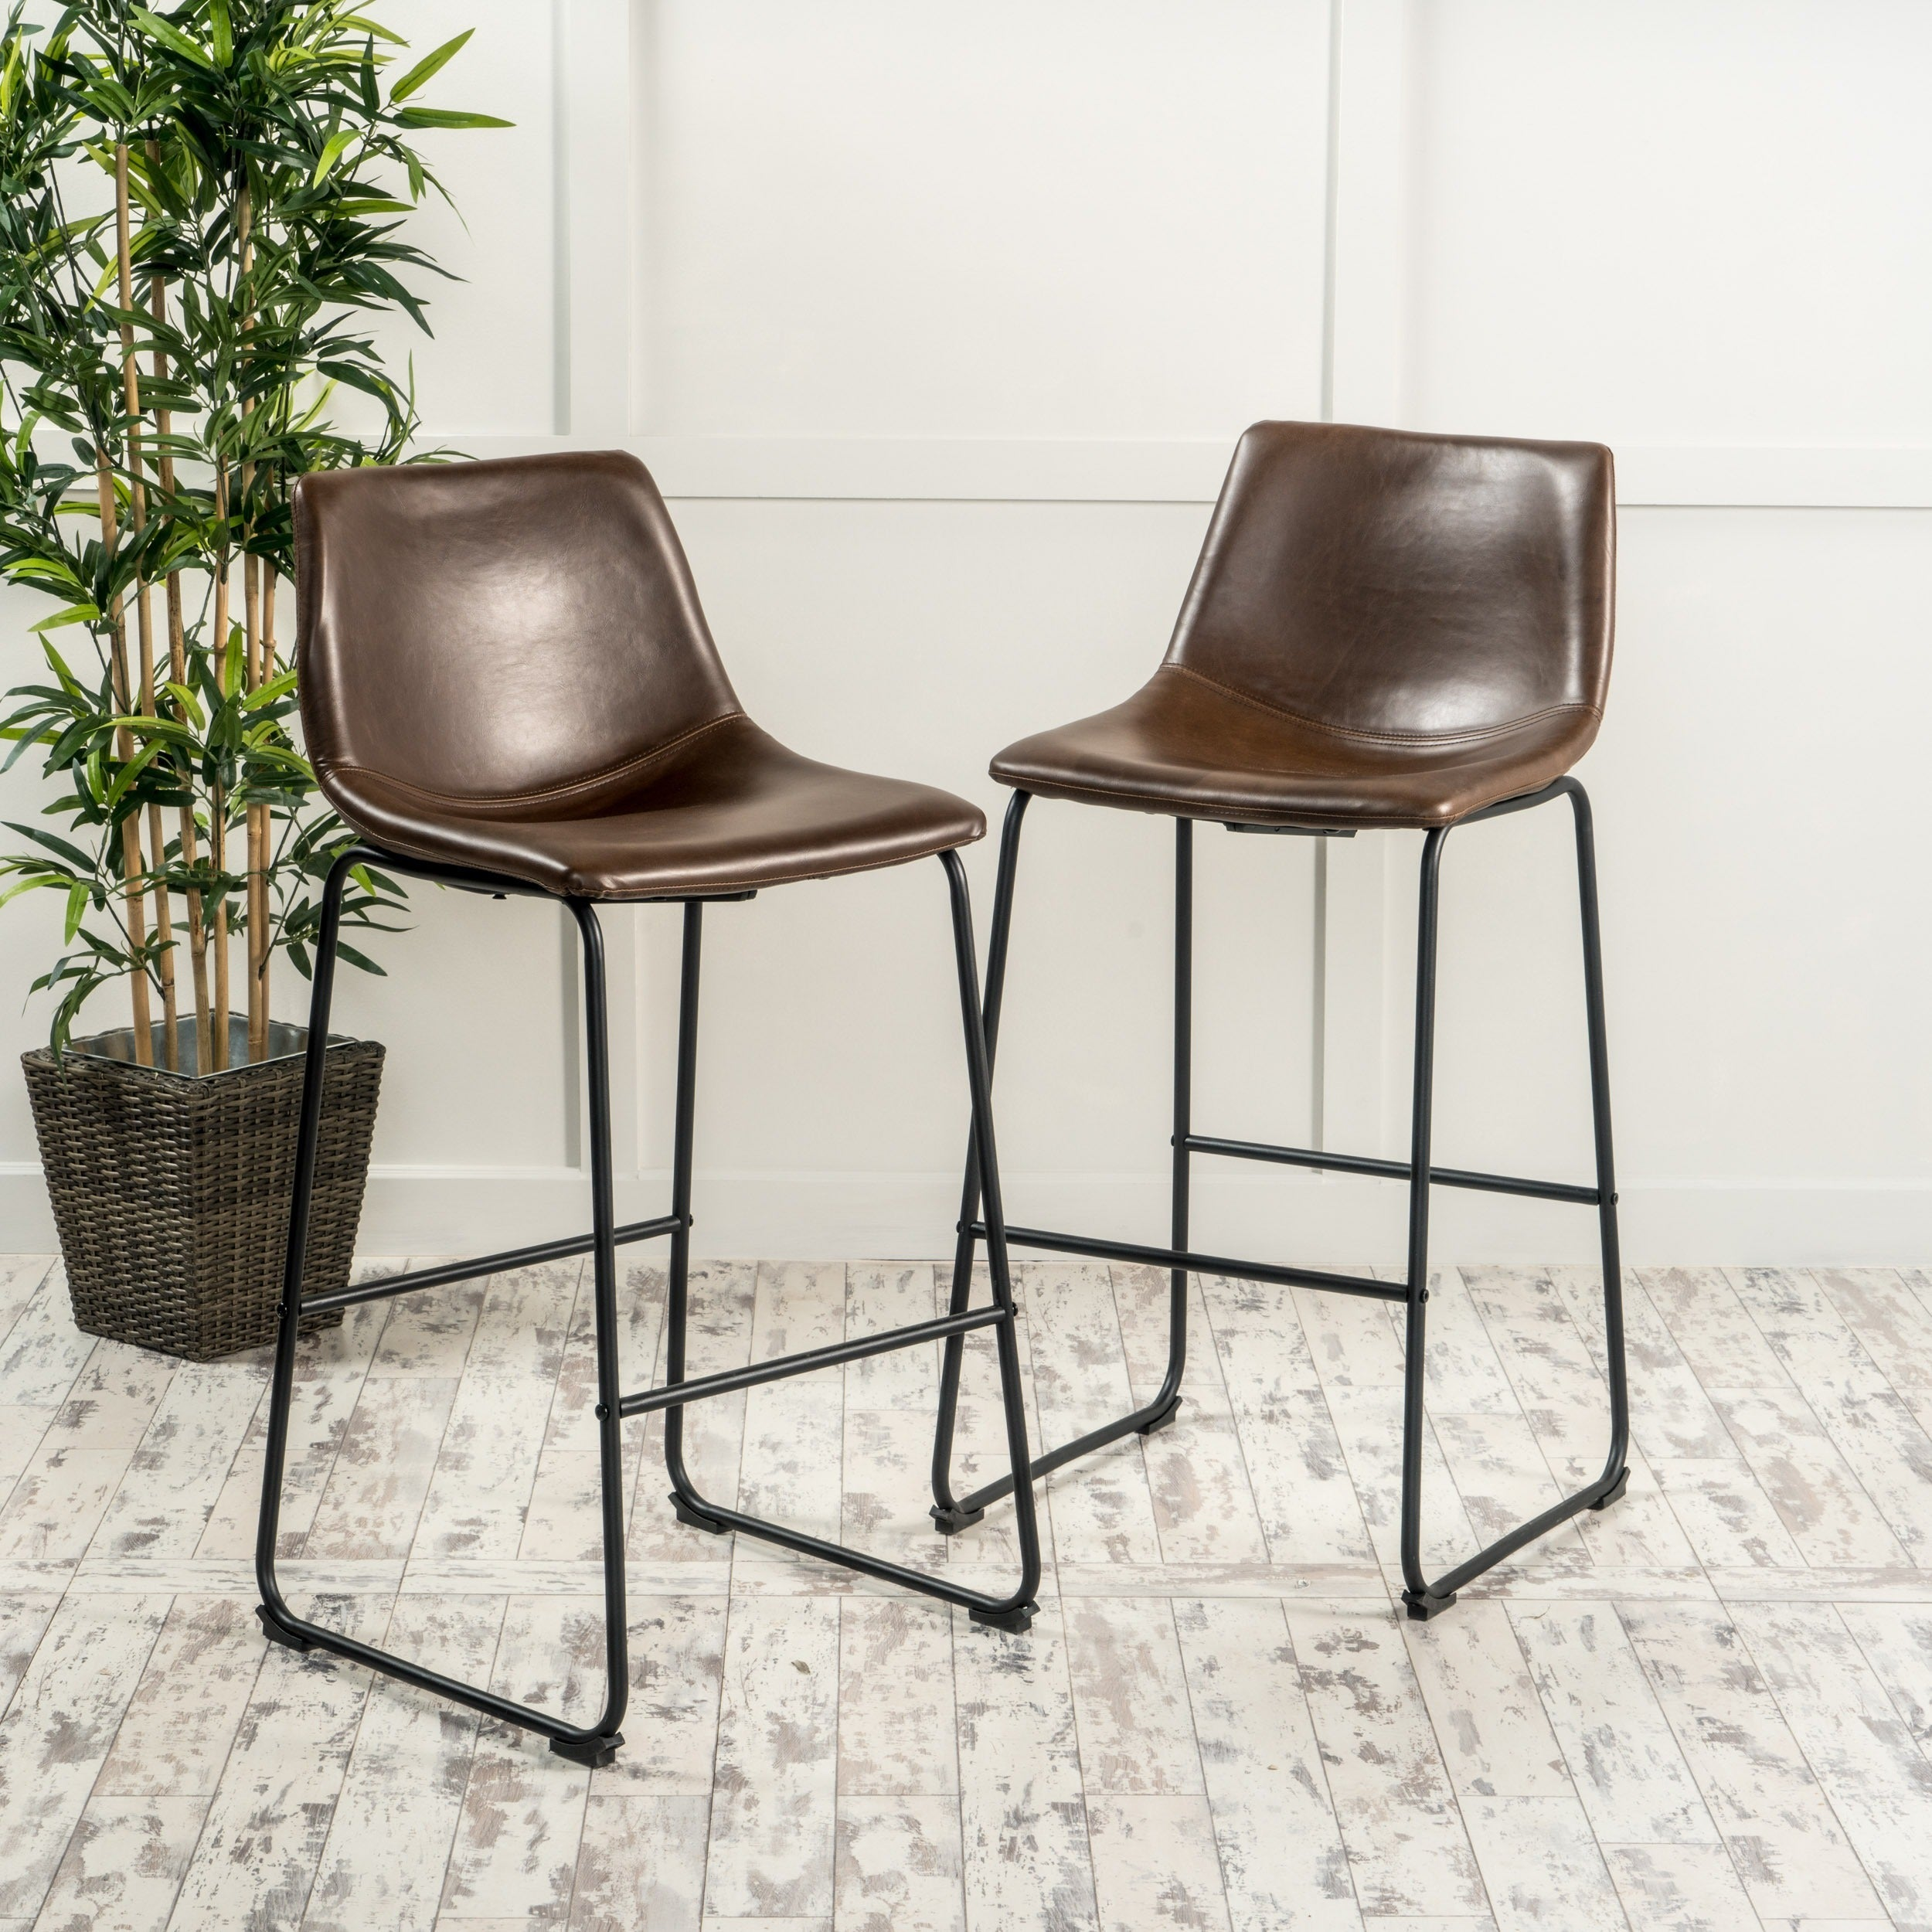 faux leather bar stools. Cedric 30-inch Faux Leather Barstool (Set Of 2) By Christopher Knight Home - Free Shipping Today Overstock 18900817 Bar Stools I